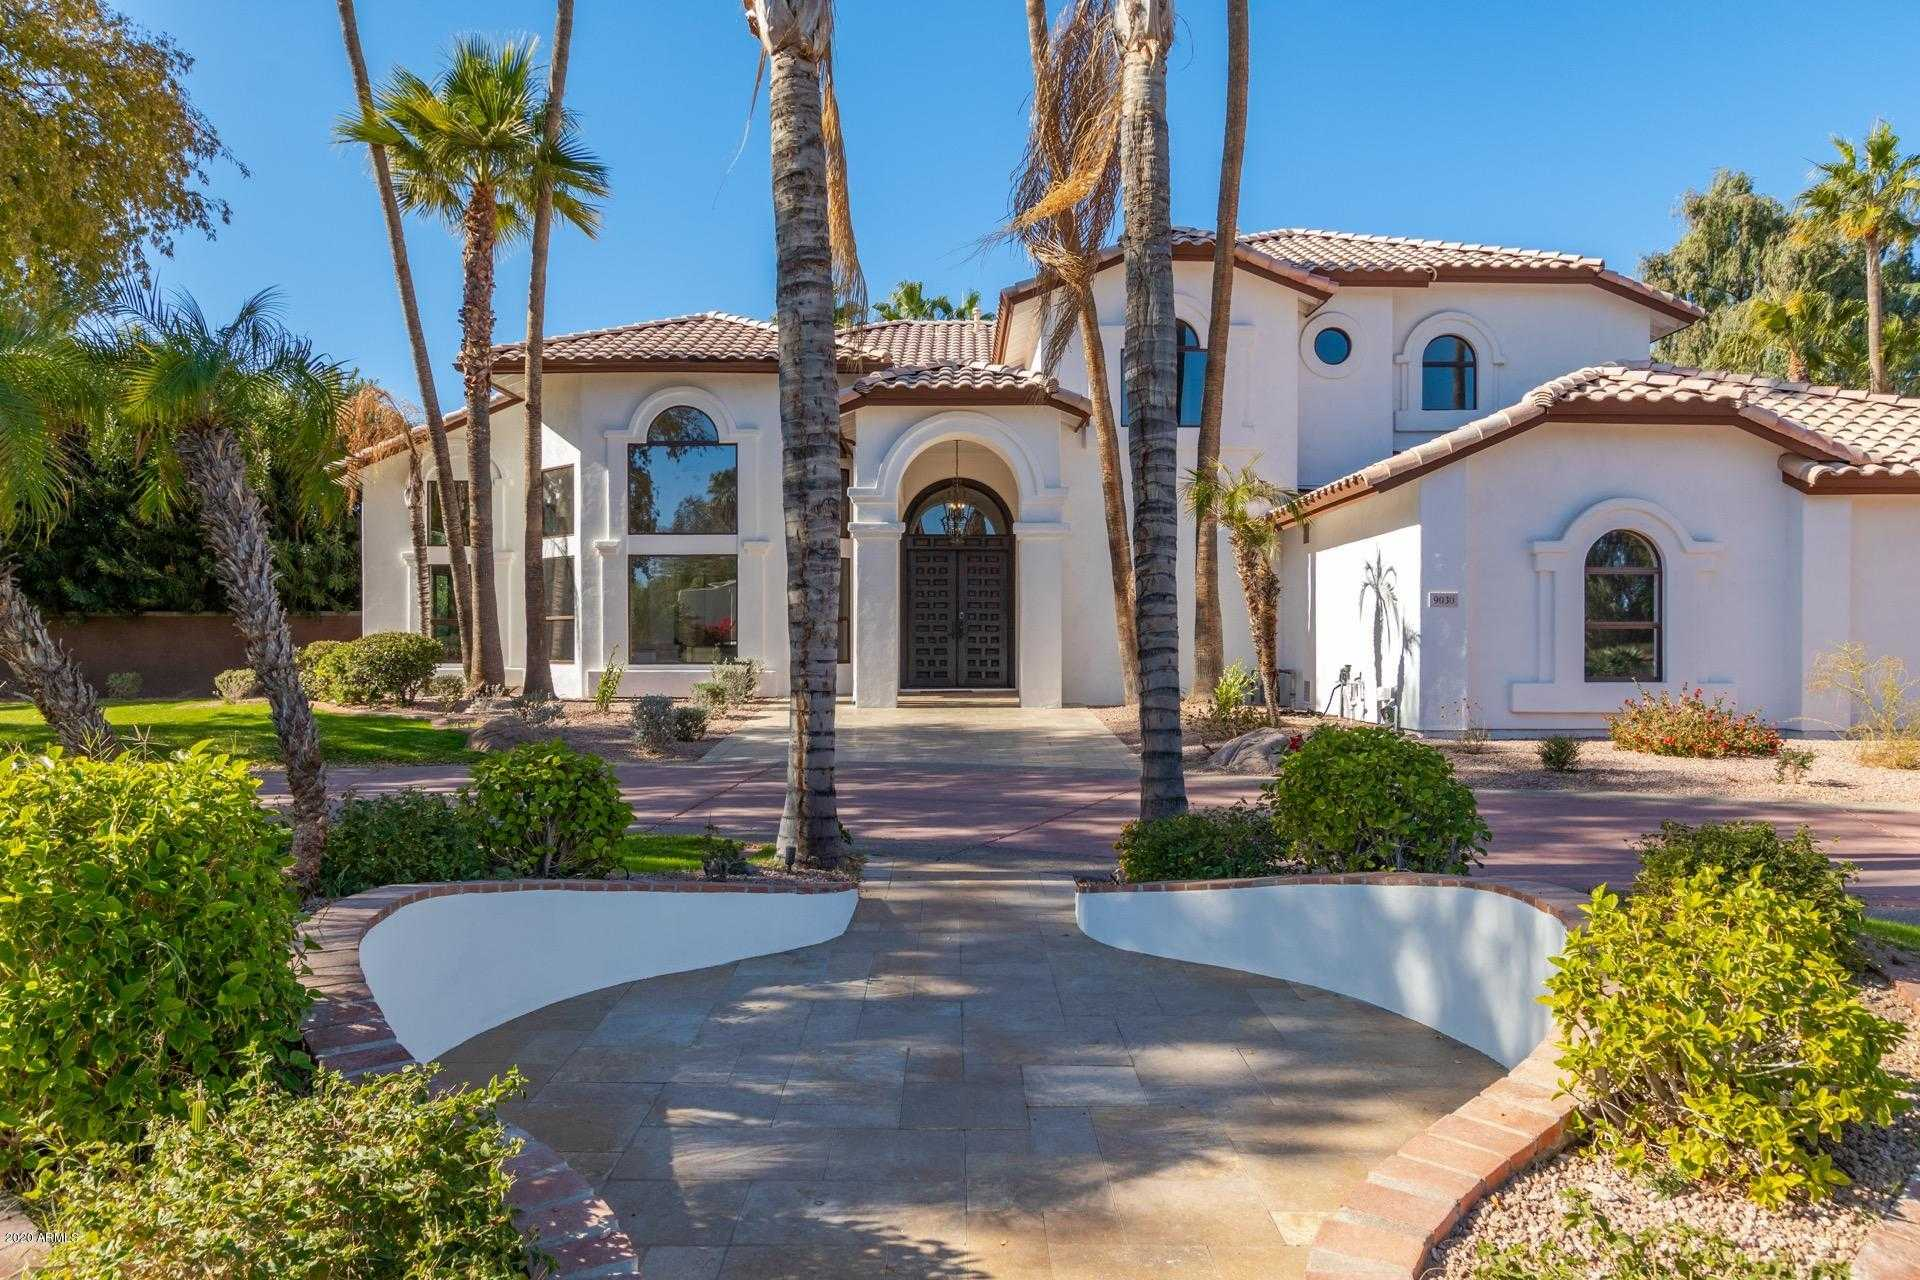 $2,145,000 - 6Br/7Ba - Home for Sale in Foothills Estates Unit 2, Paradise Valley